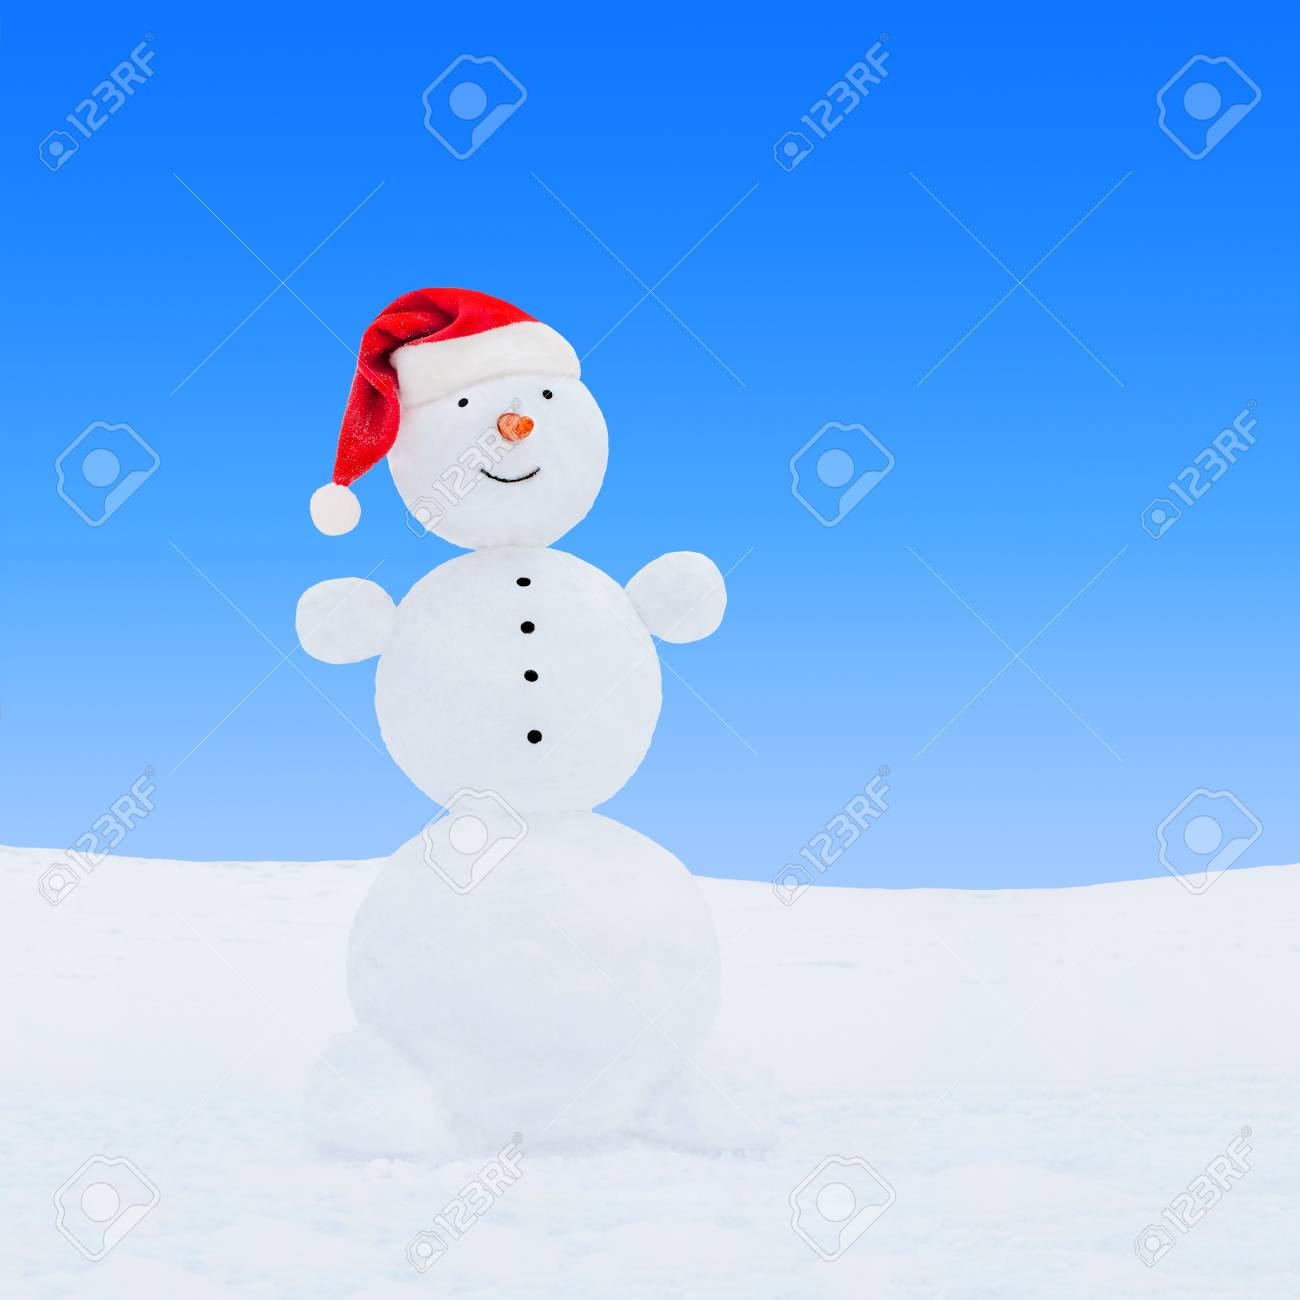 1a47605bf631d Stock Photo - Winter snowman in red Christmas Santa hat on snow at blue sky  background. New Year s greeting card concept